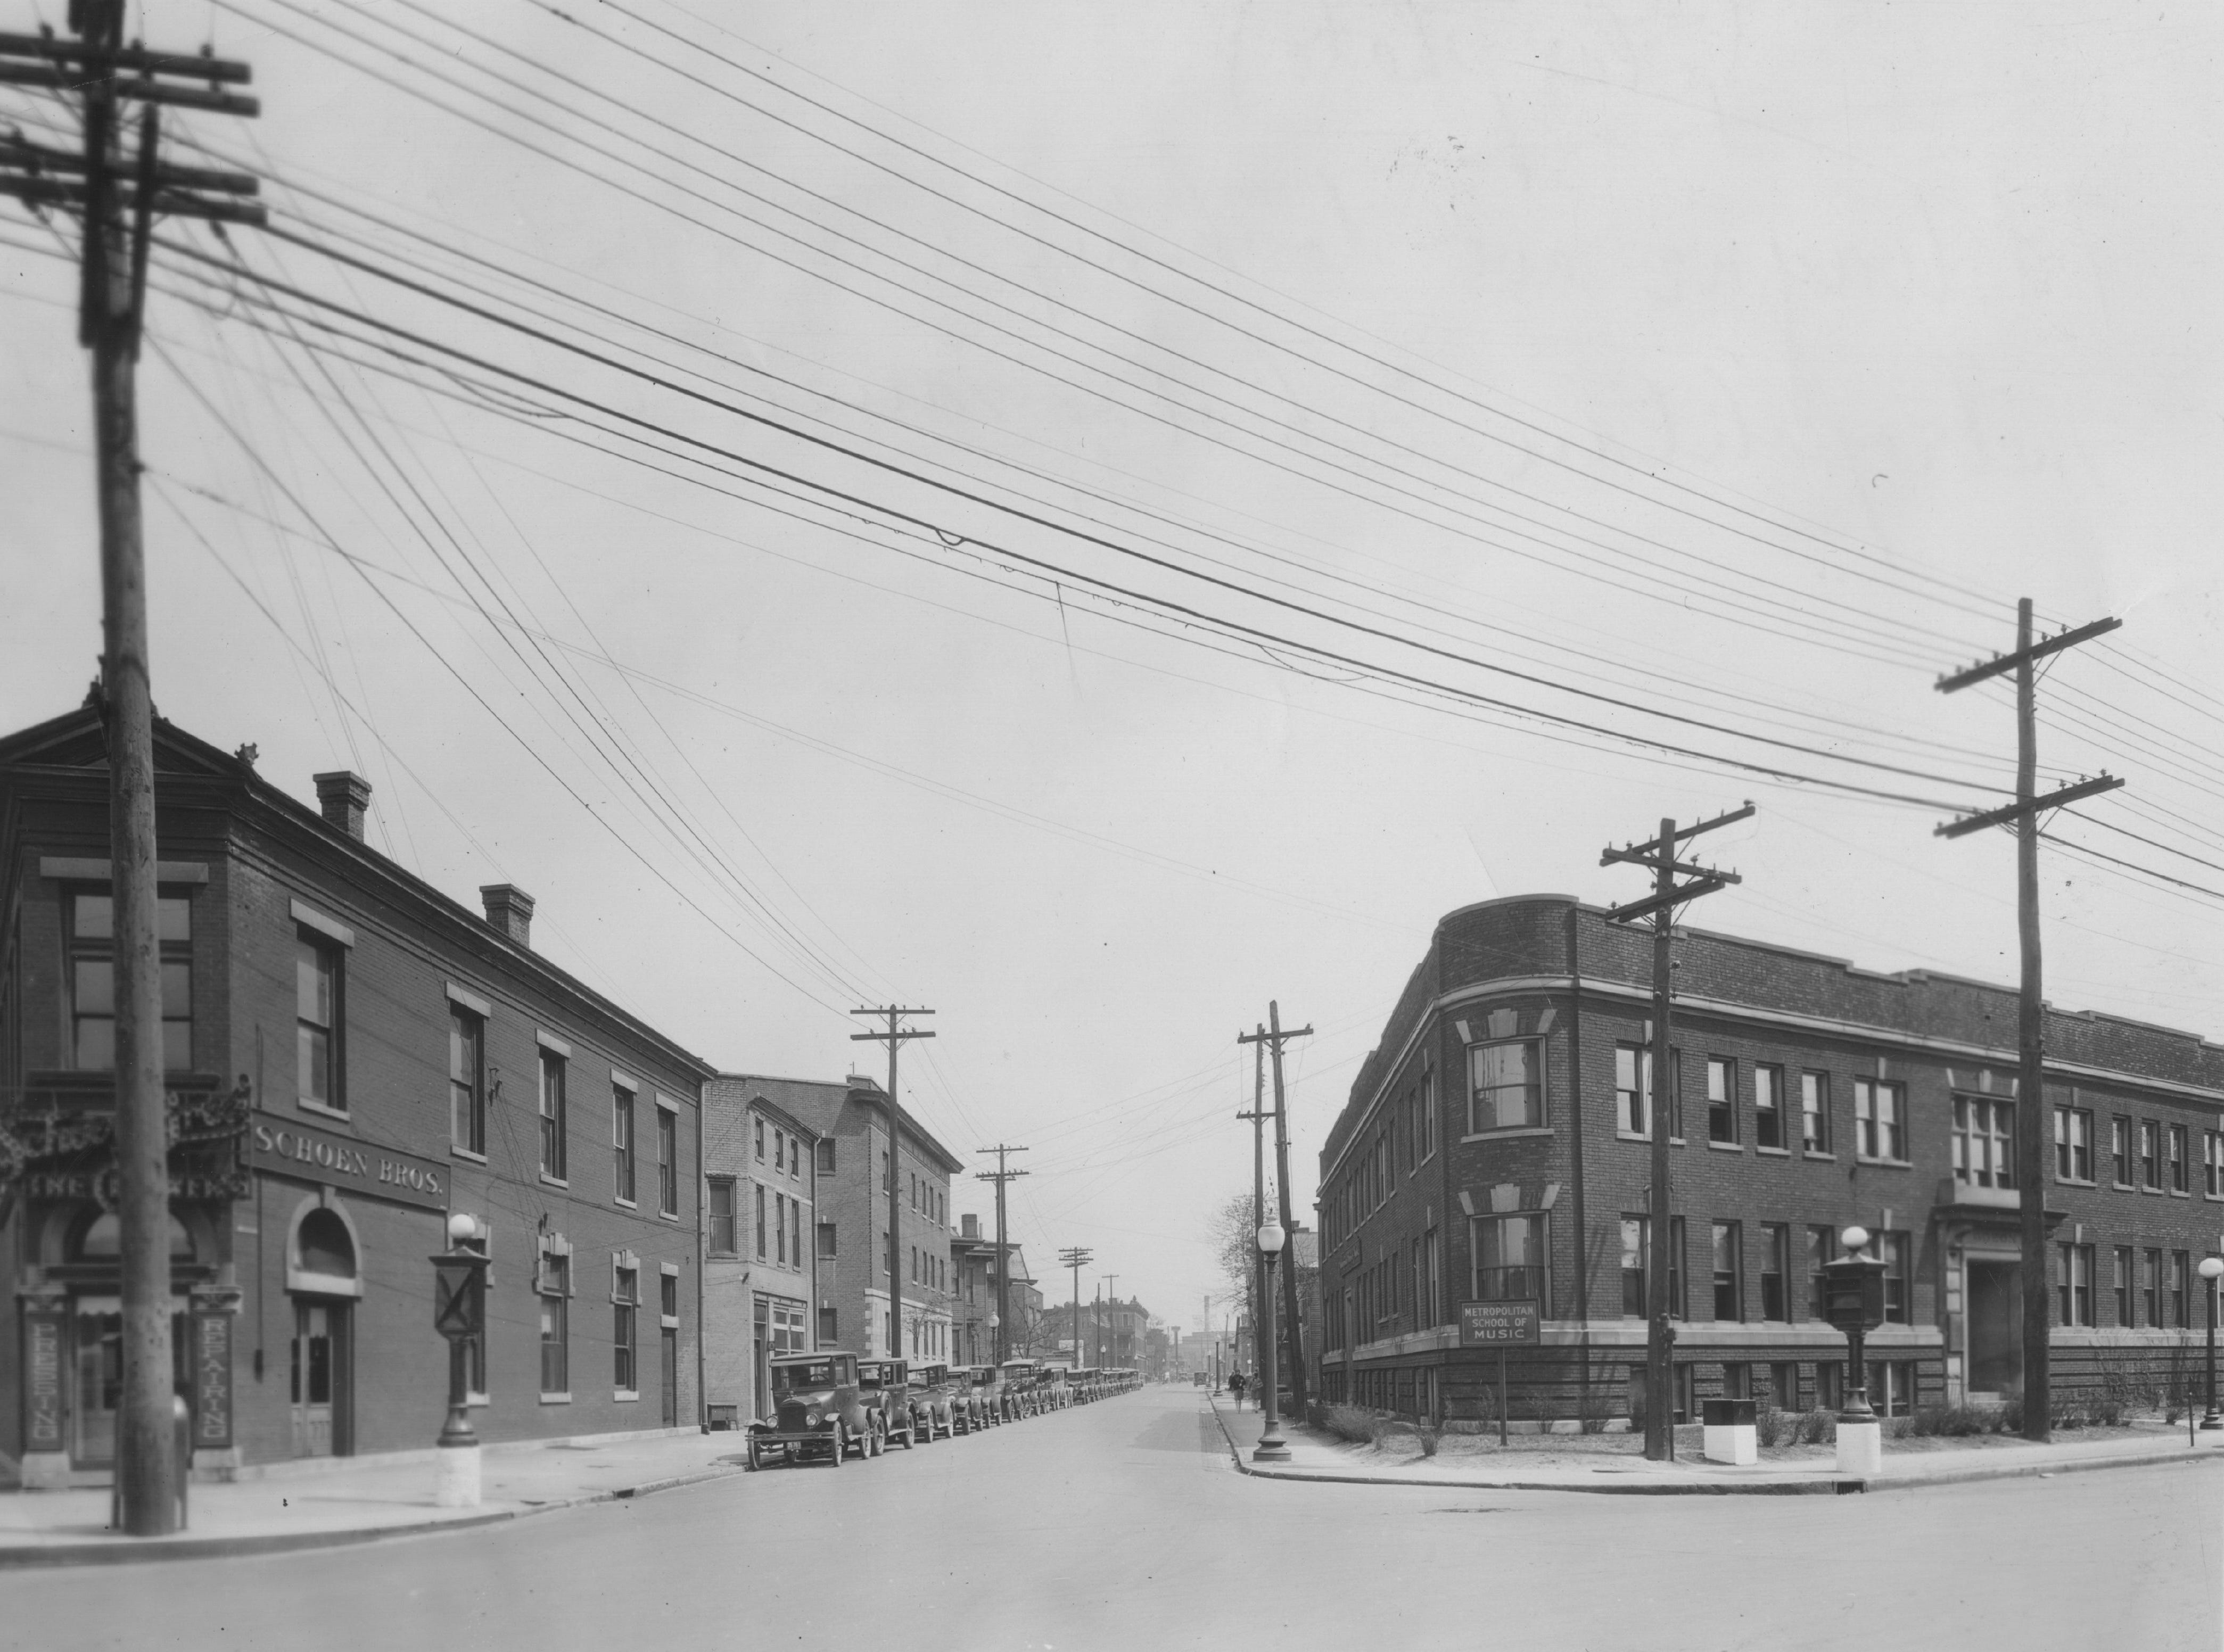 Ft Wayne Avenue looking northeast from North St. Jan 1, 1929.  The Metropolitan School of Museum and Odean Hall is at the right (this later became the Arthur Jordan Conservatory) This is now a parking lot.  The building at the left is Schoen Bros. Cleaners.